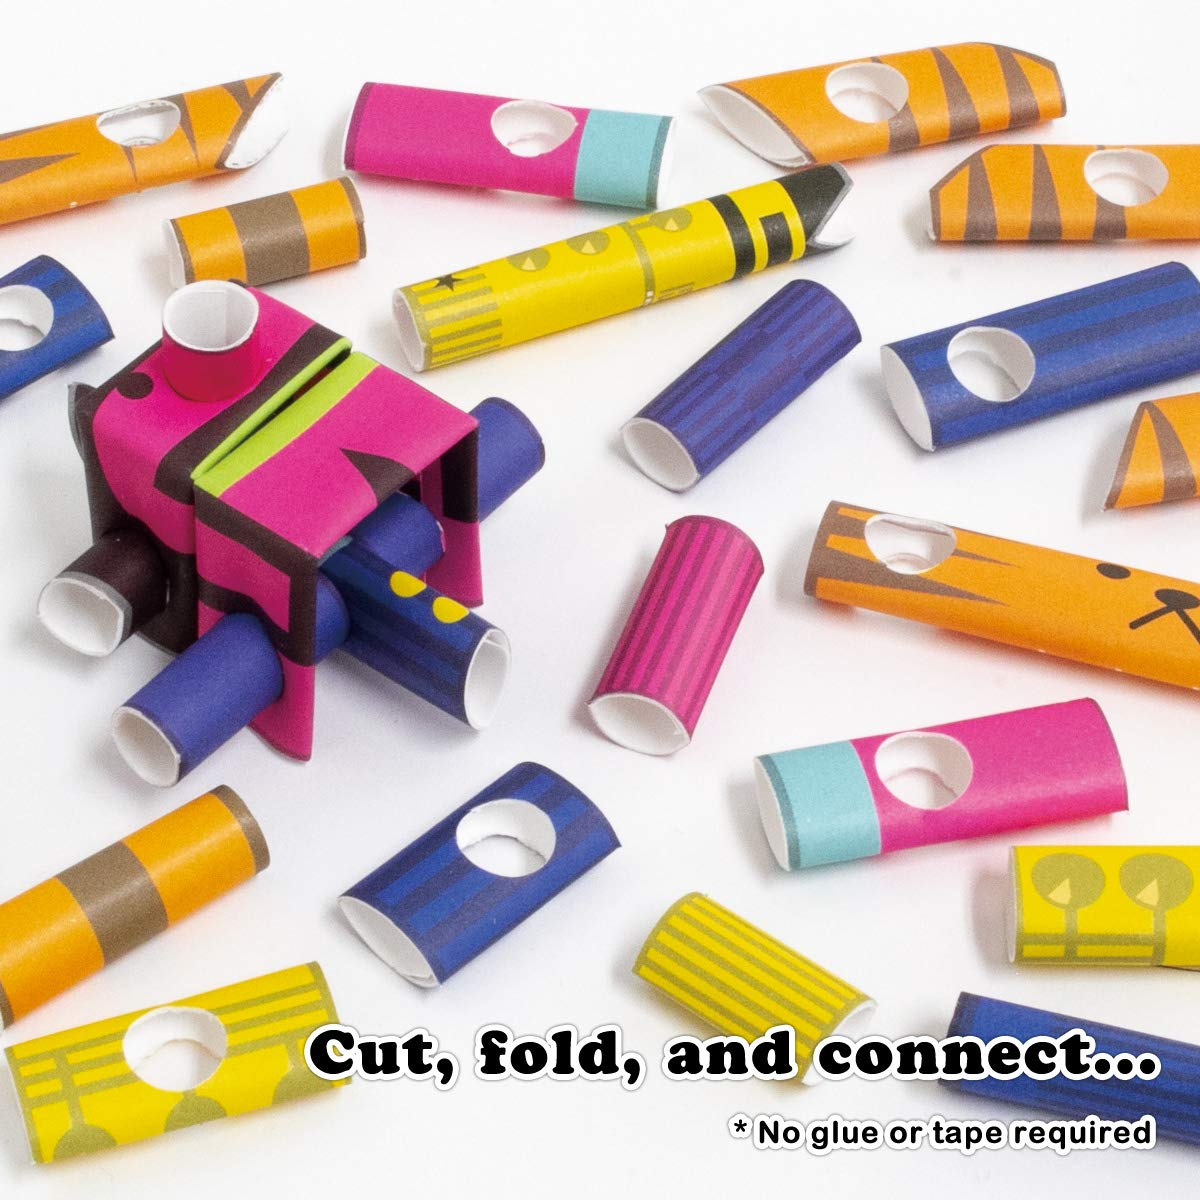 LTD CT-pip030 Old Package PIPEROID Tenor /& Silky Paper Craft Robot kit from Japan KOTO CO Jazzman /& His Cat